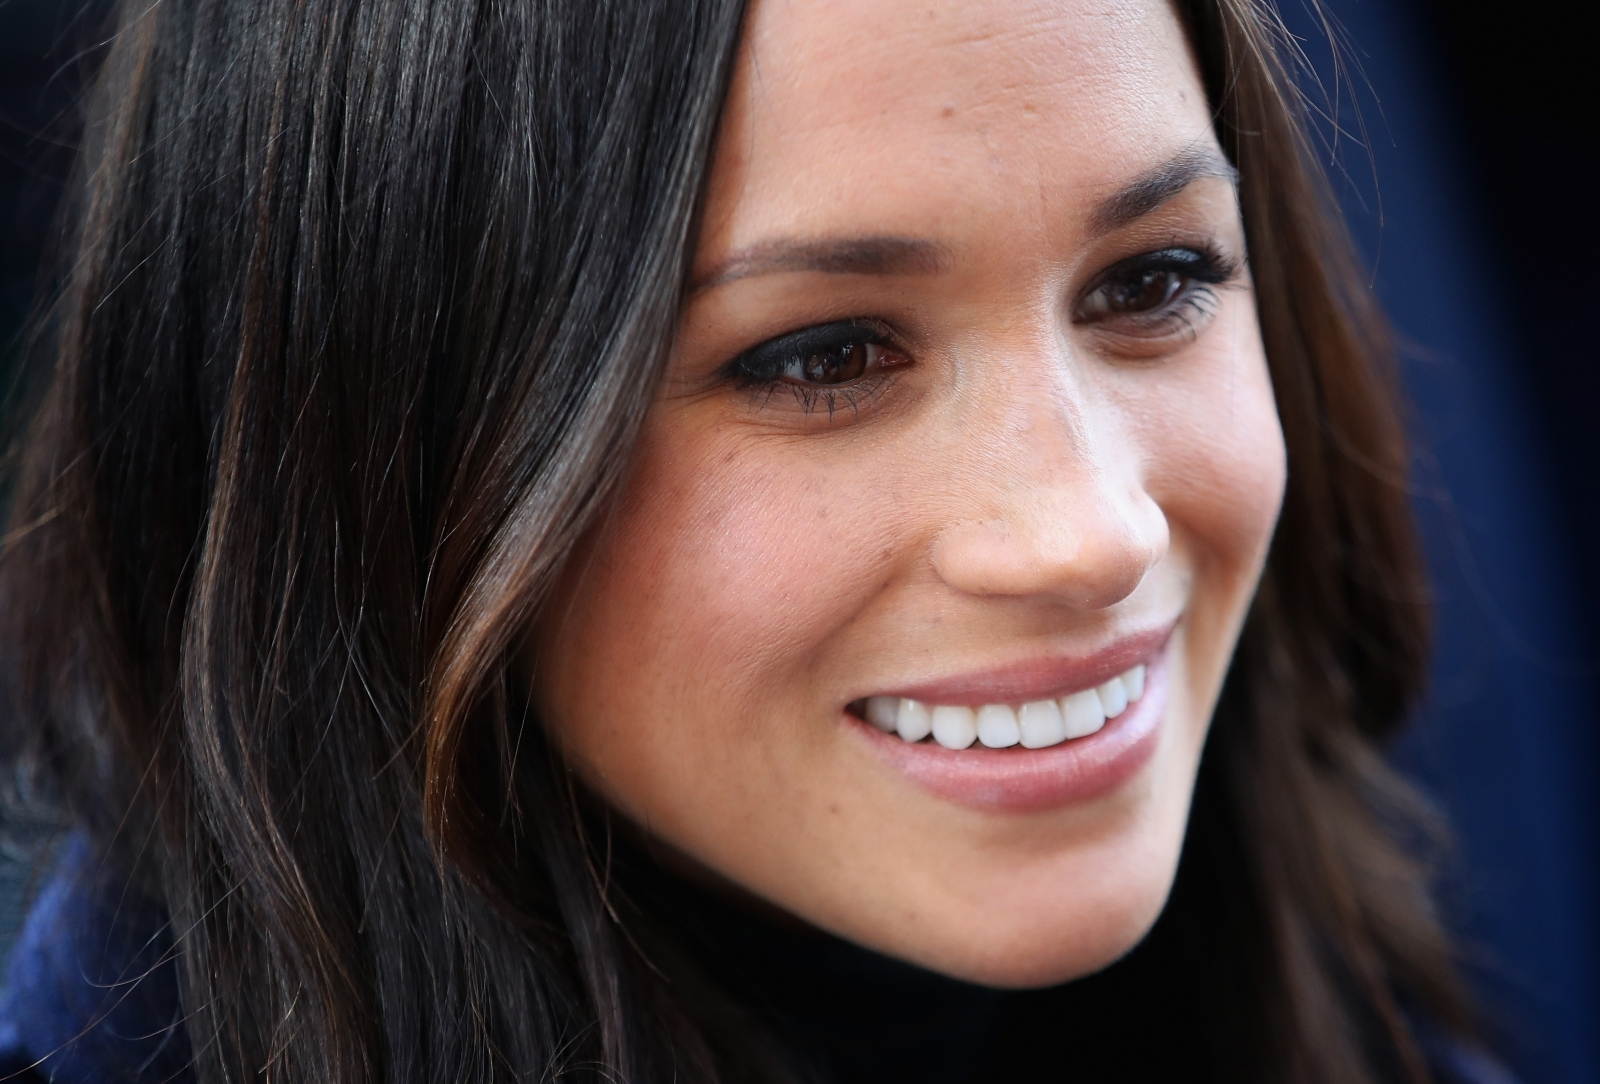 Meghan Markle 39 S Nose Why It Is So Popular And How Much